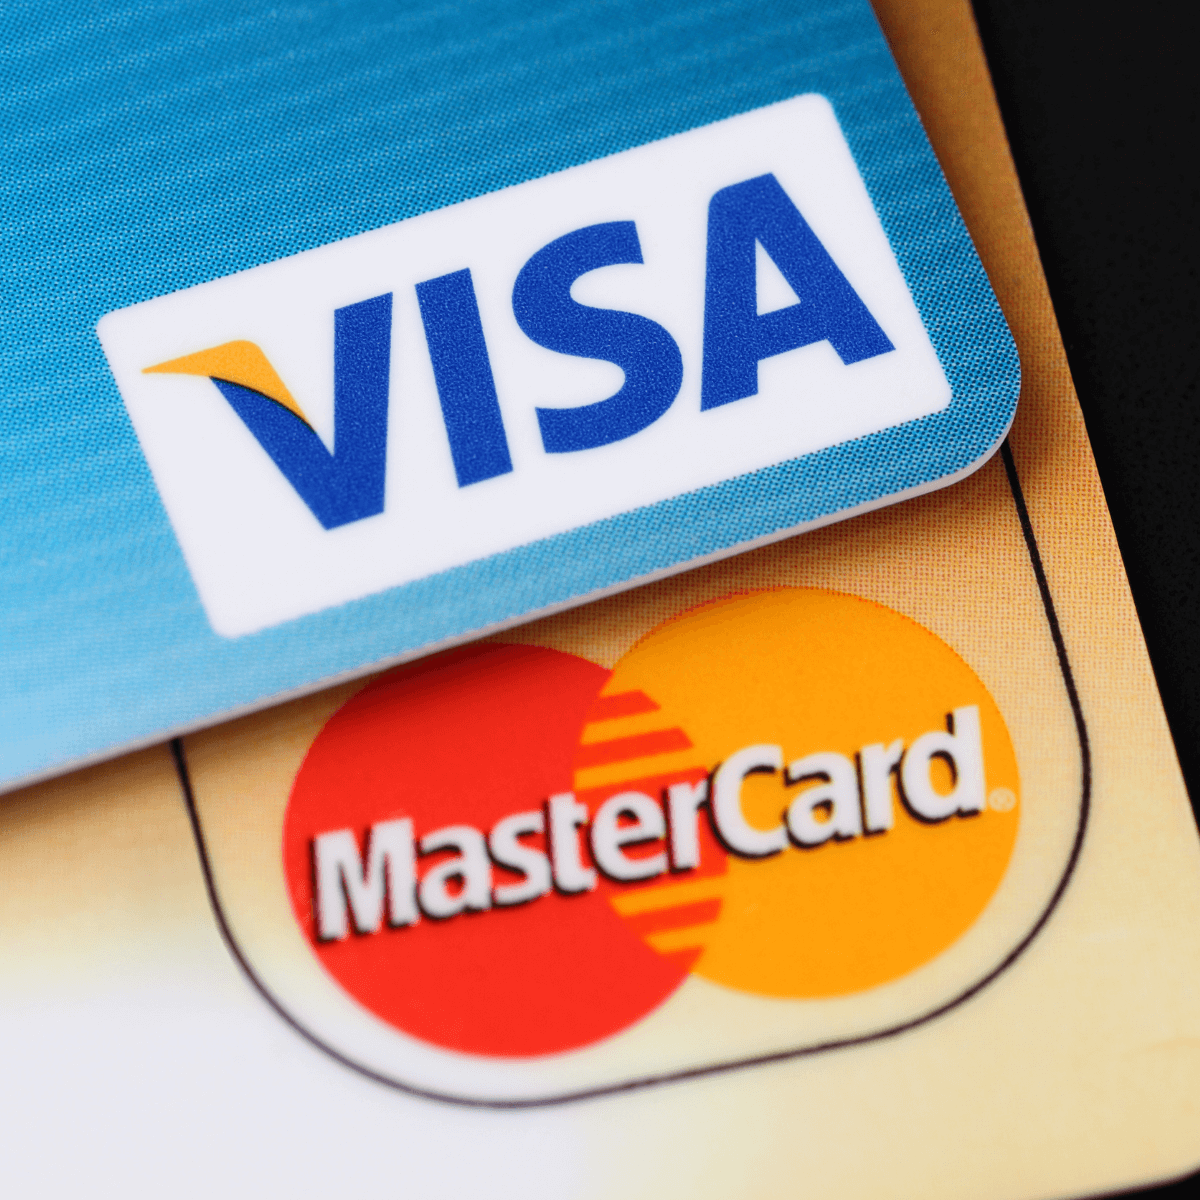 Mastercard vs. Visa: Do You Know The Difference?